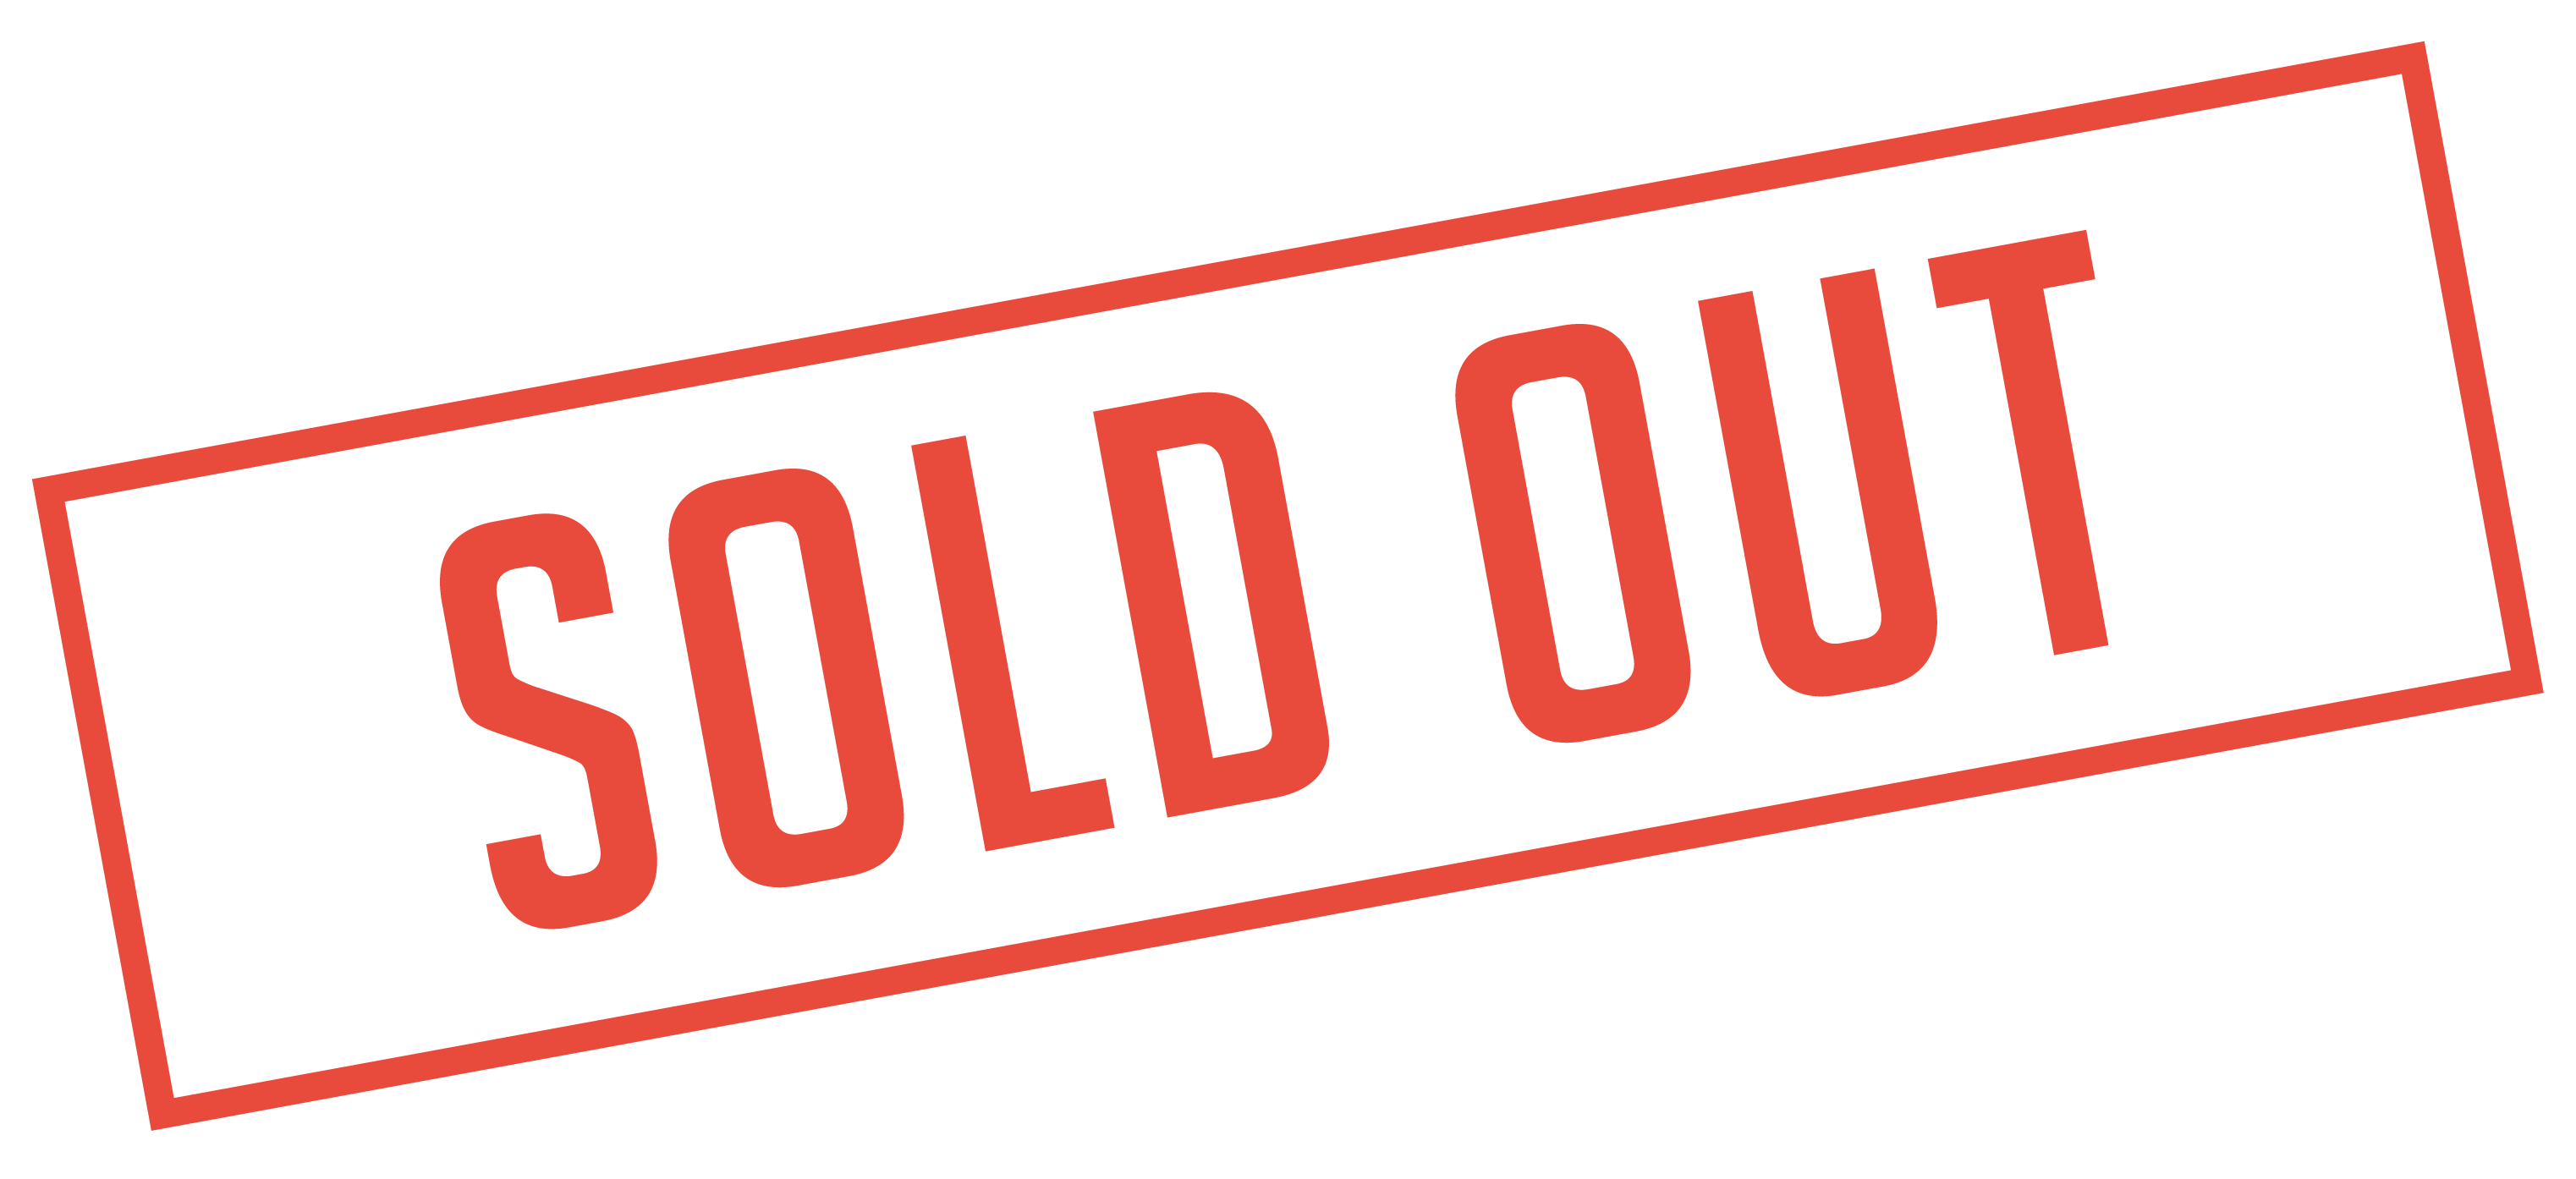 Sold out transparent png. Paper sales clip art